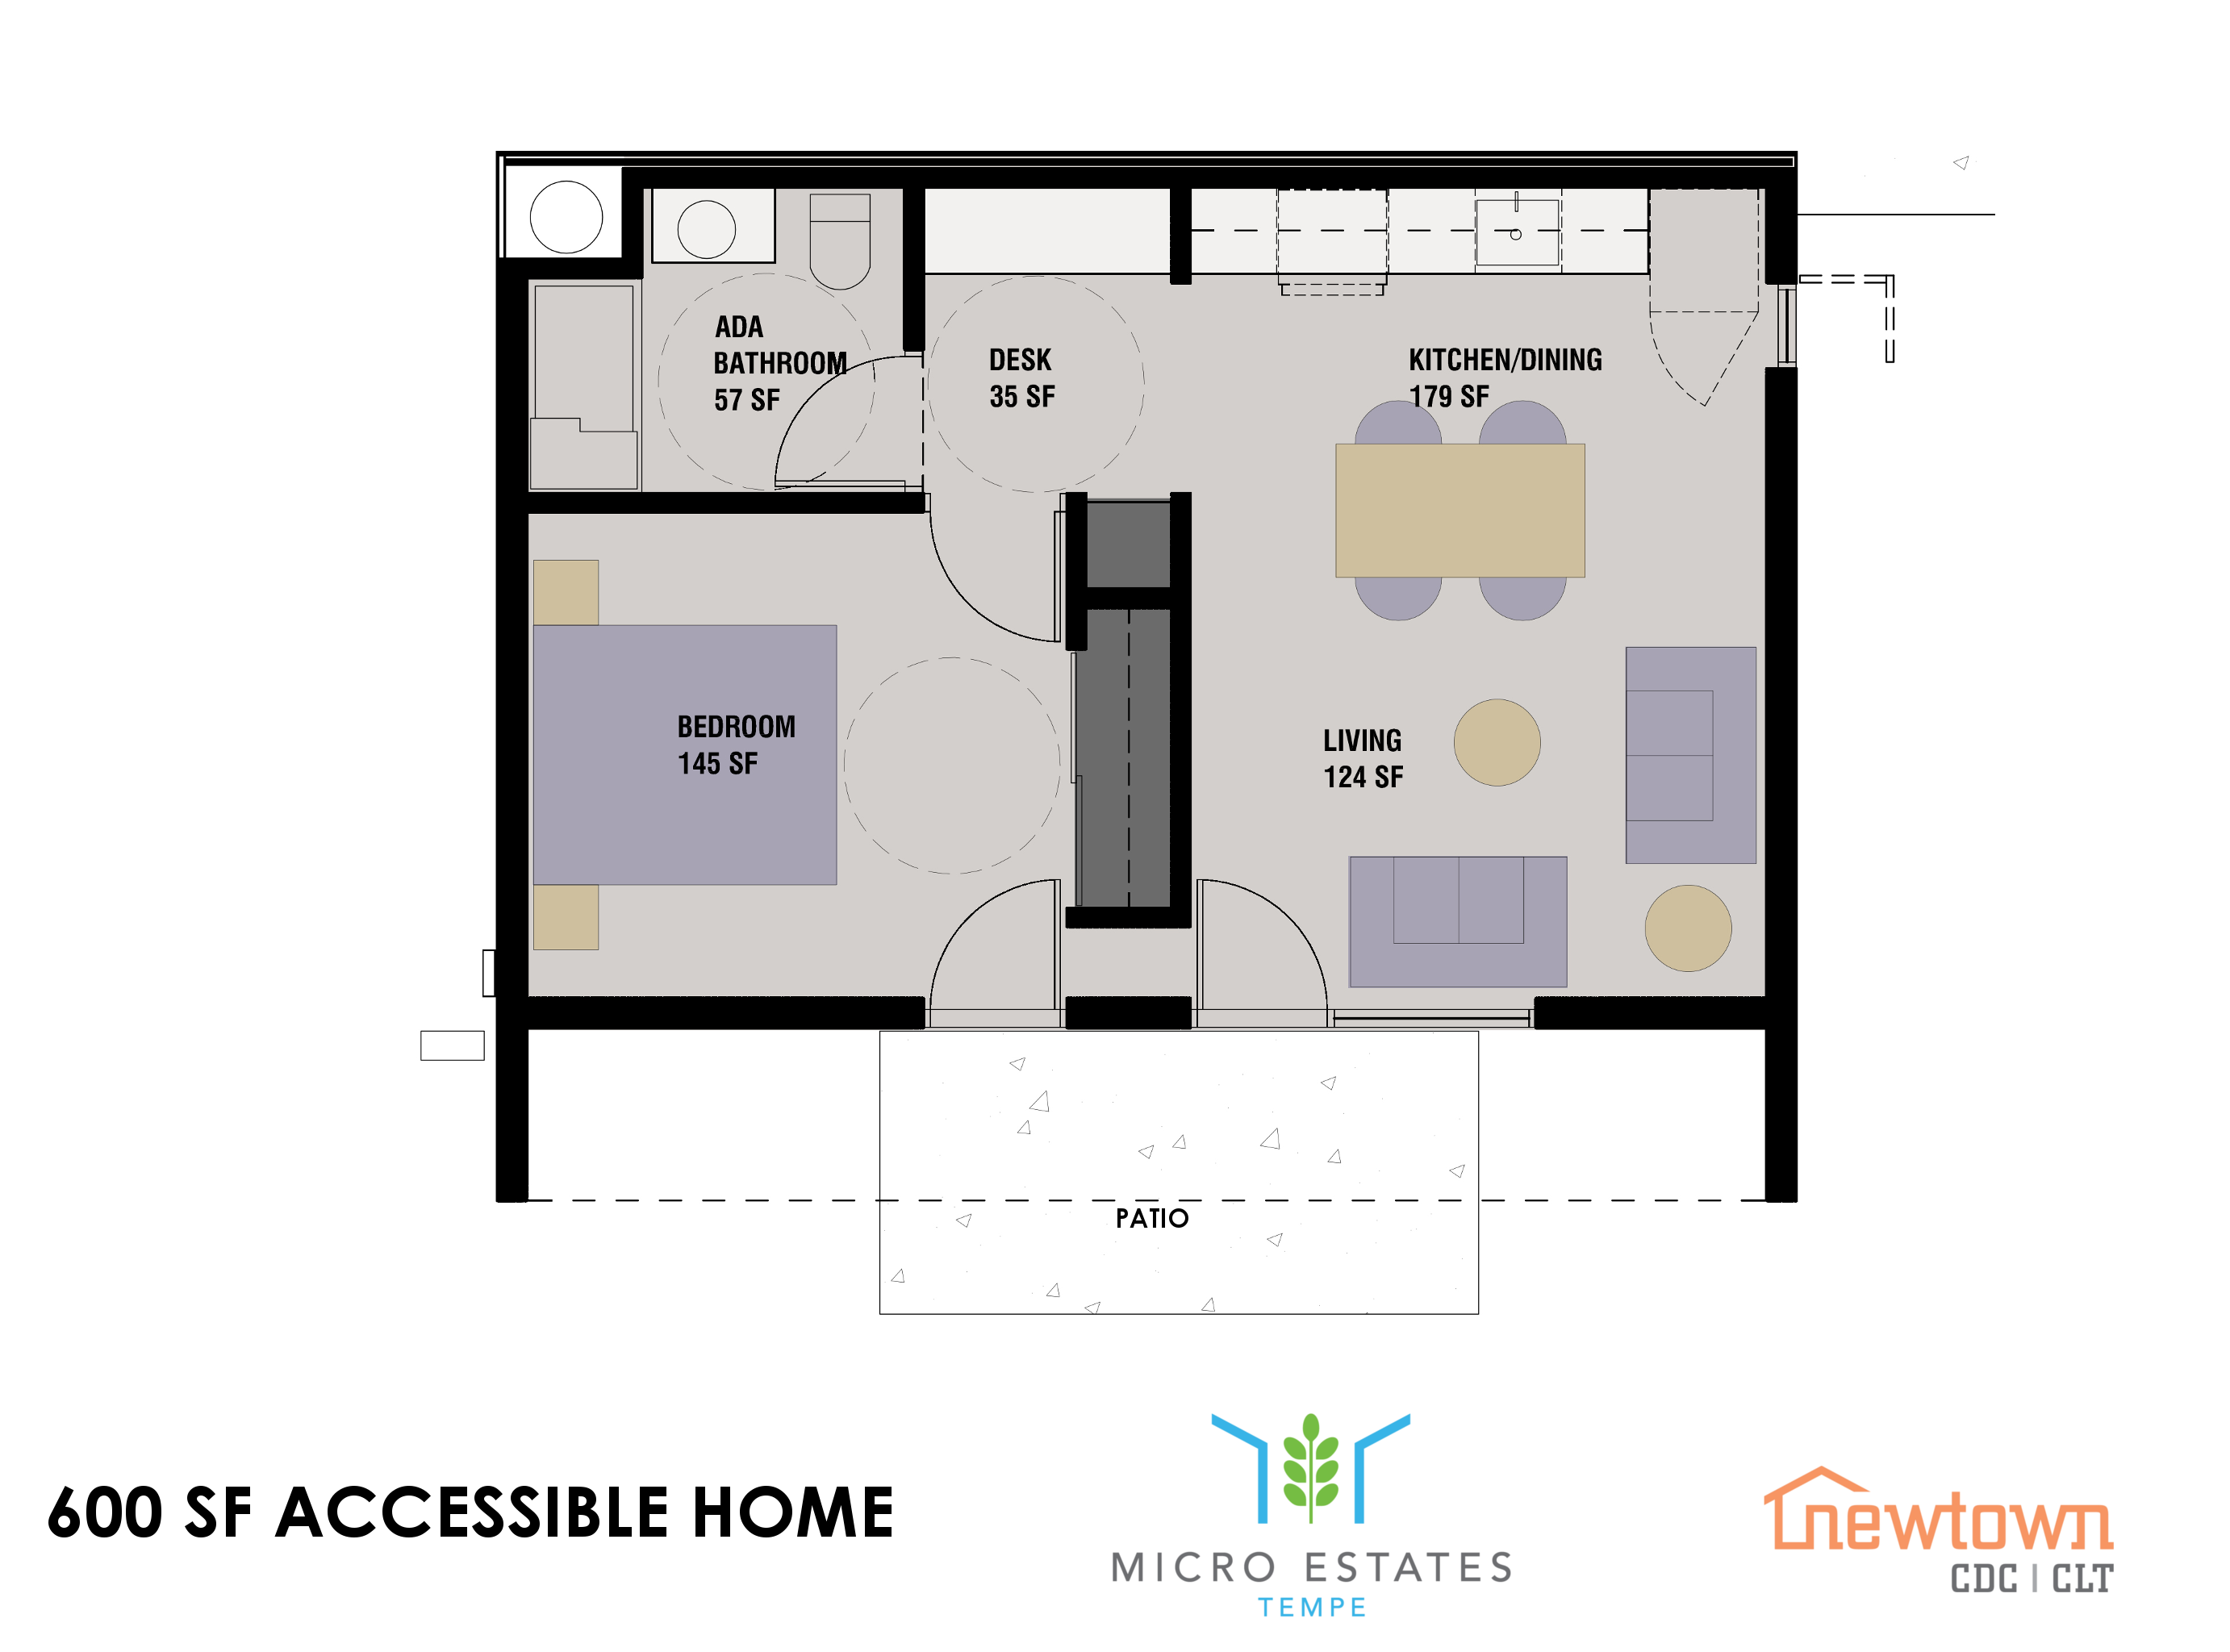 Accessible Home Floorplan